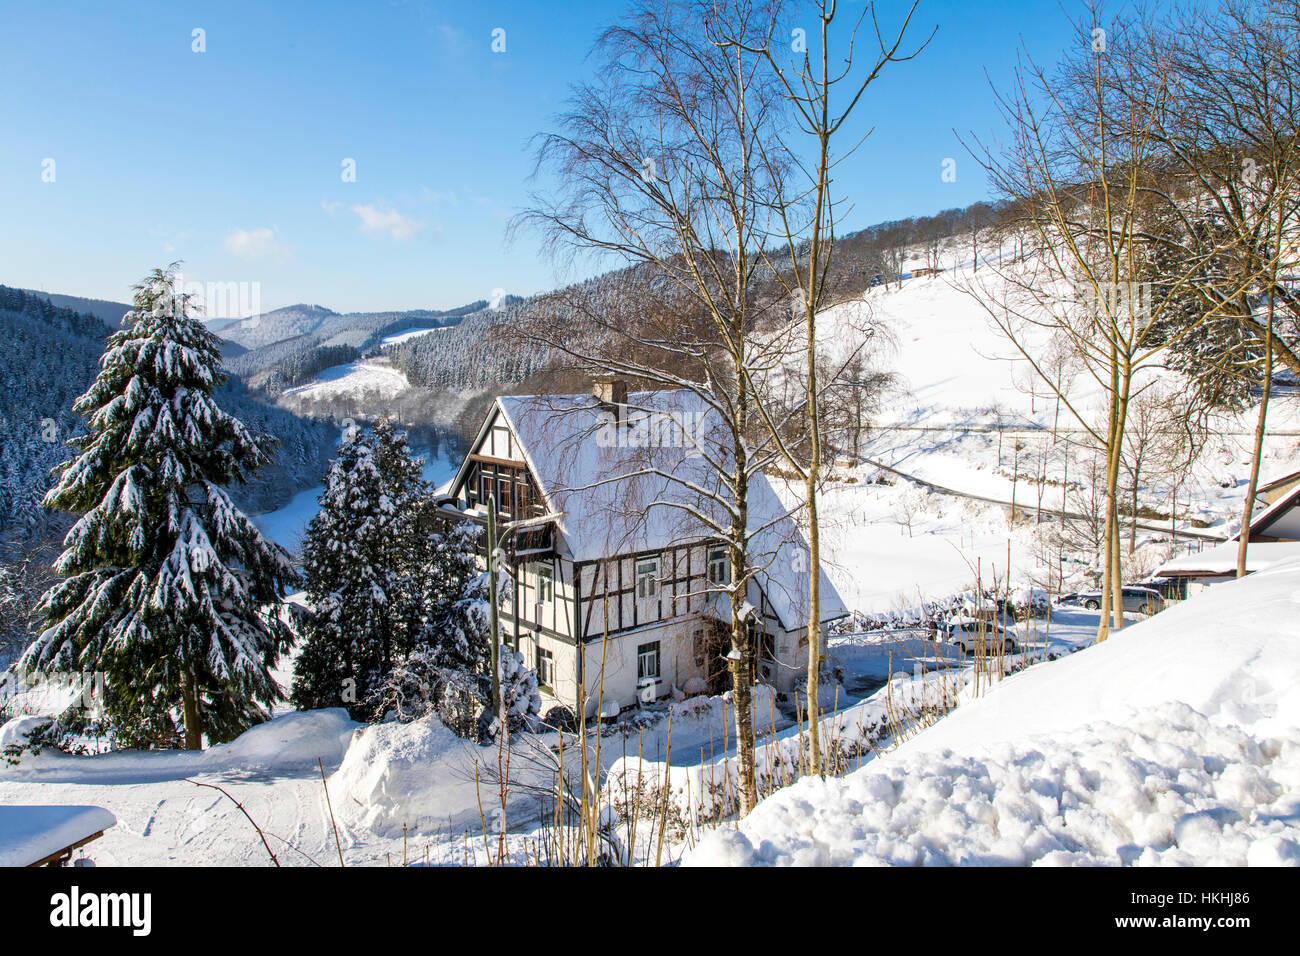 winter time in the Sauerland area, Germany, snow covered forest, Nordenau - Stock Image